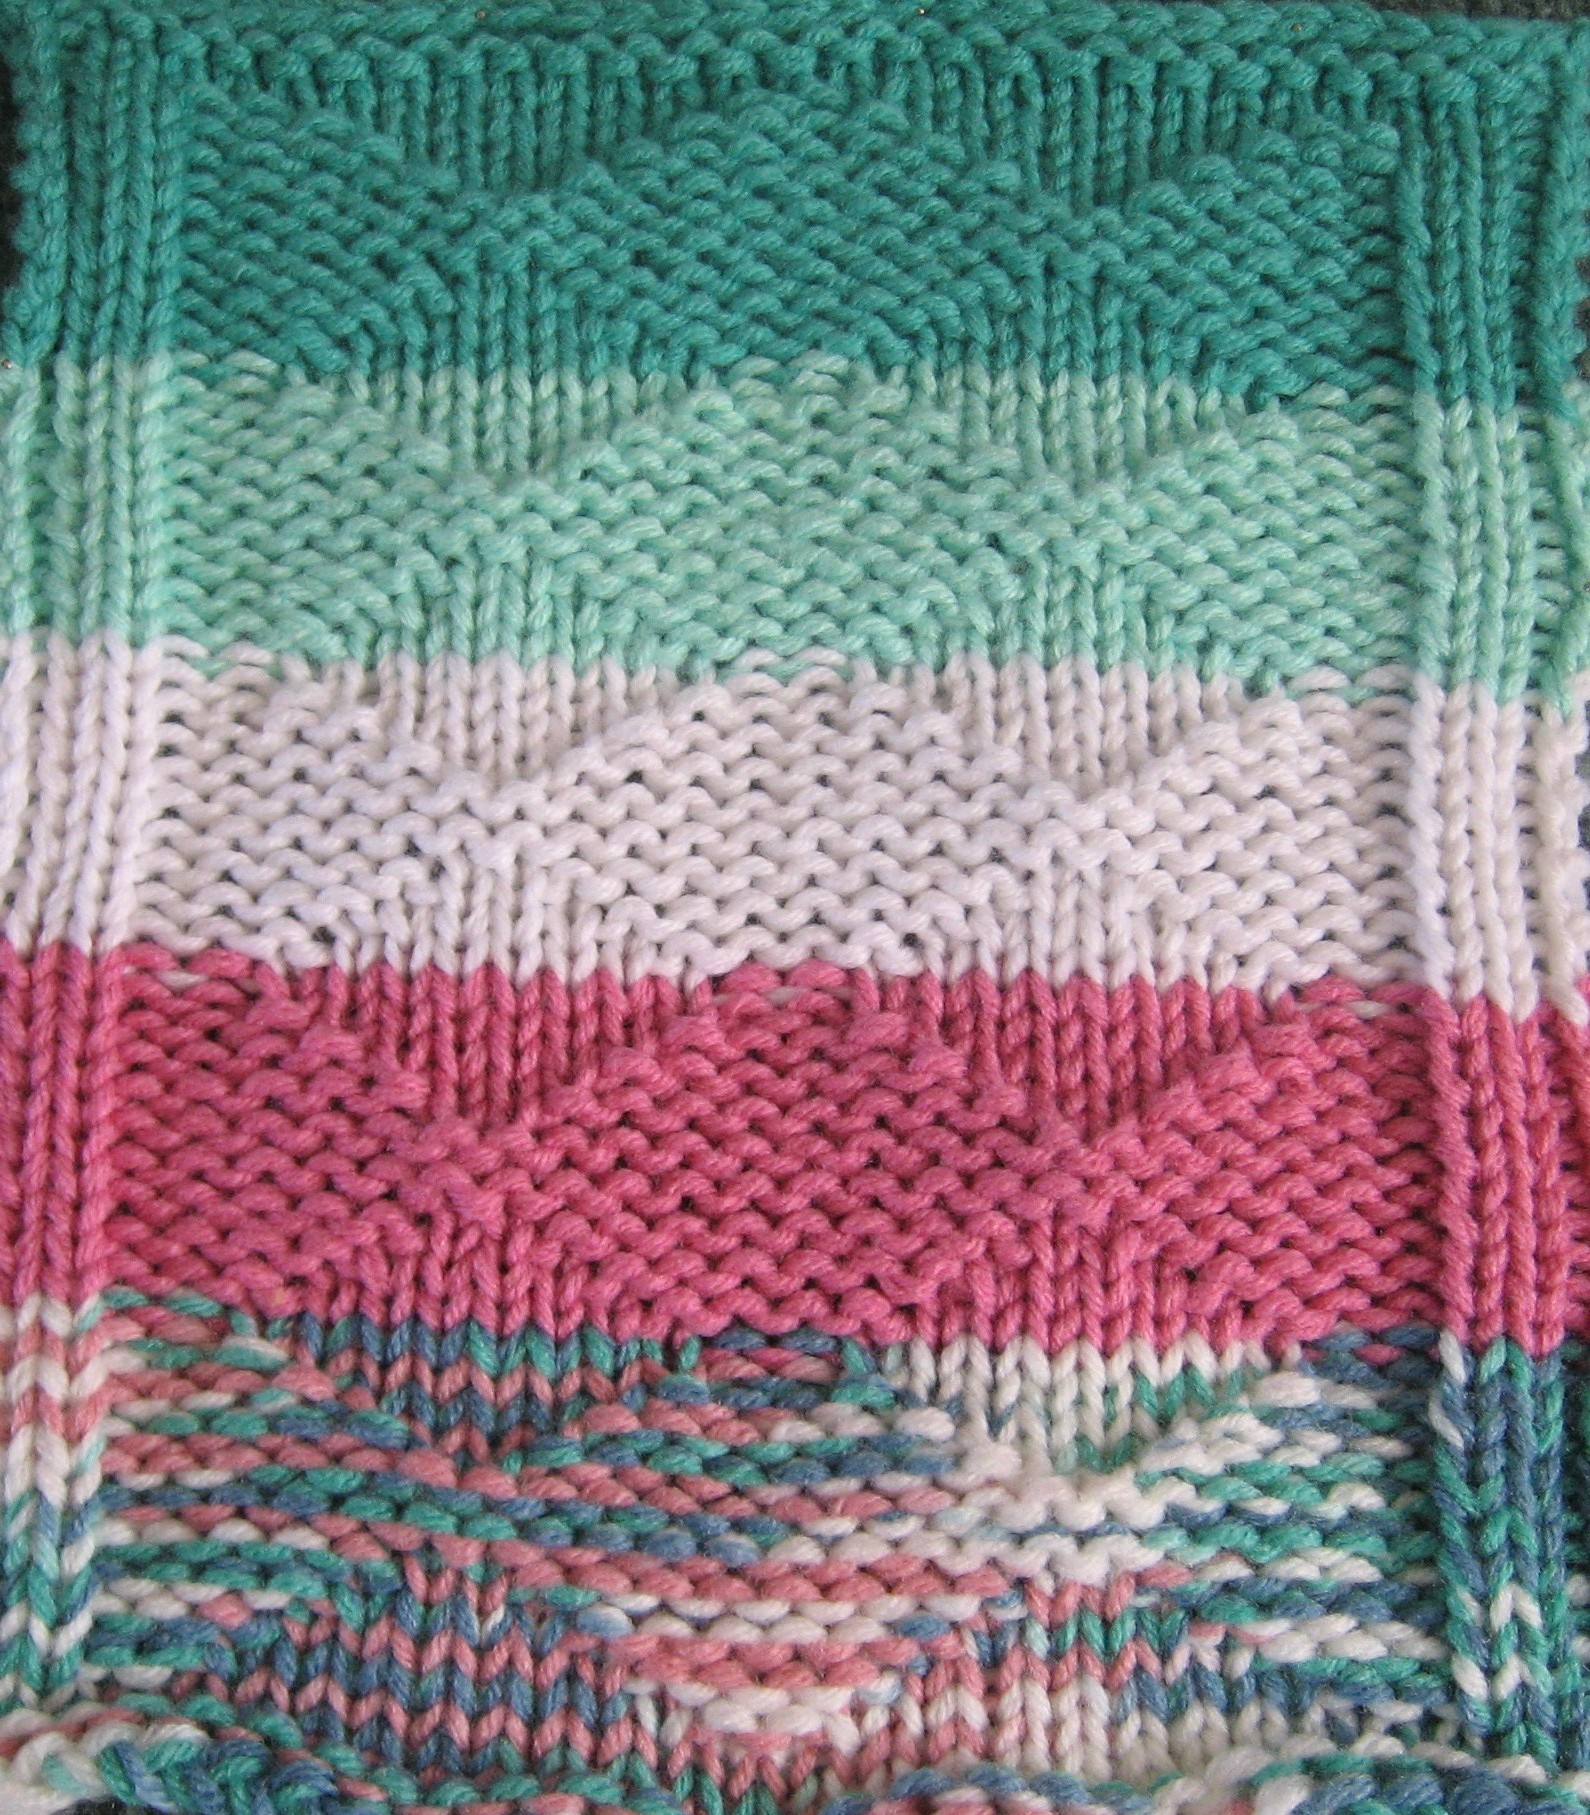 Loom Knitting Free Patterns : Free loom knit patterns guppygirl